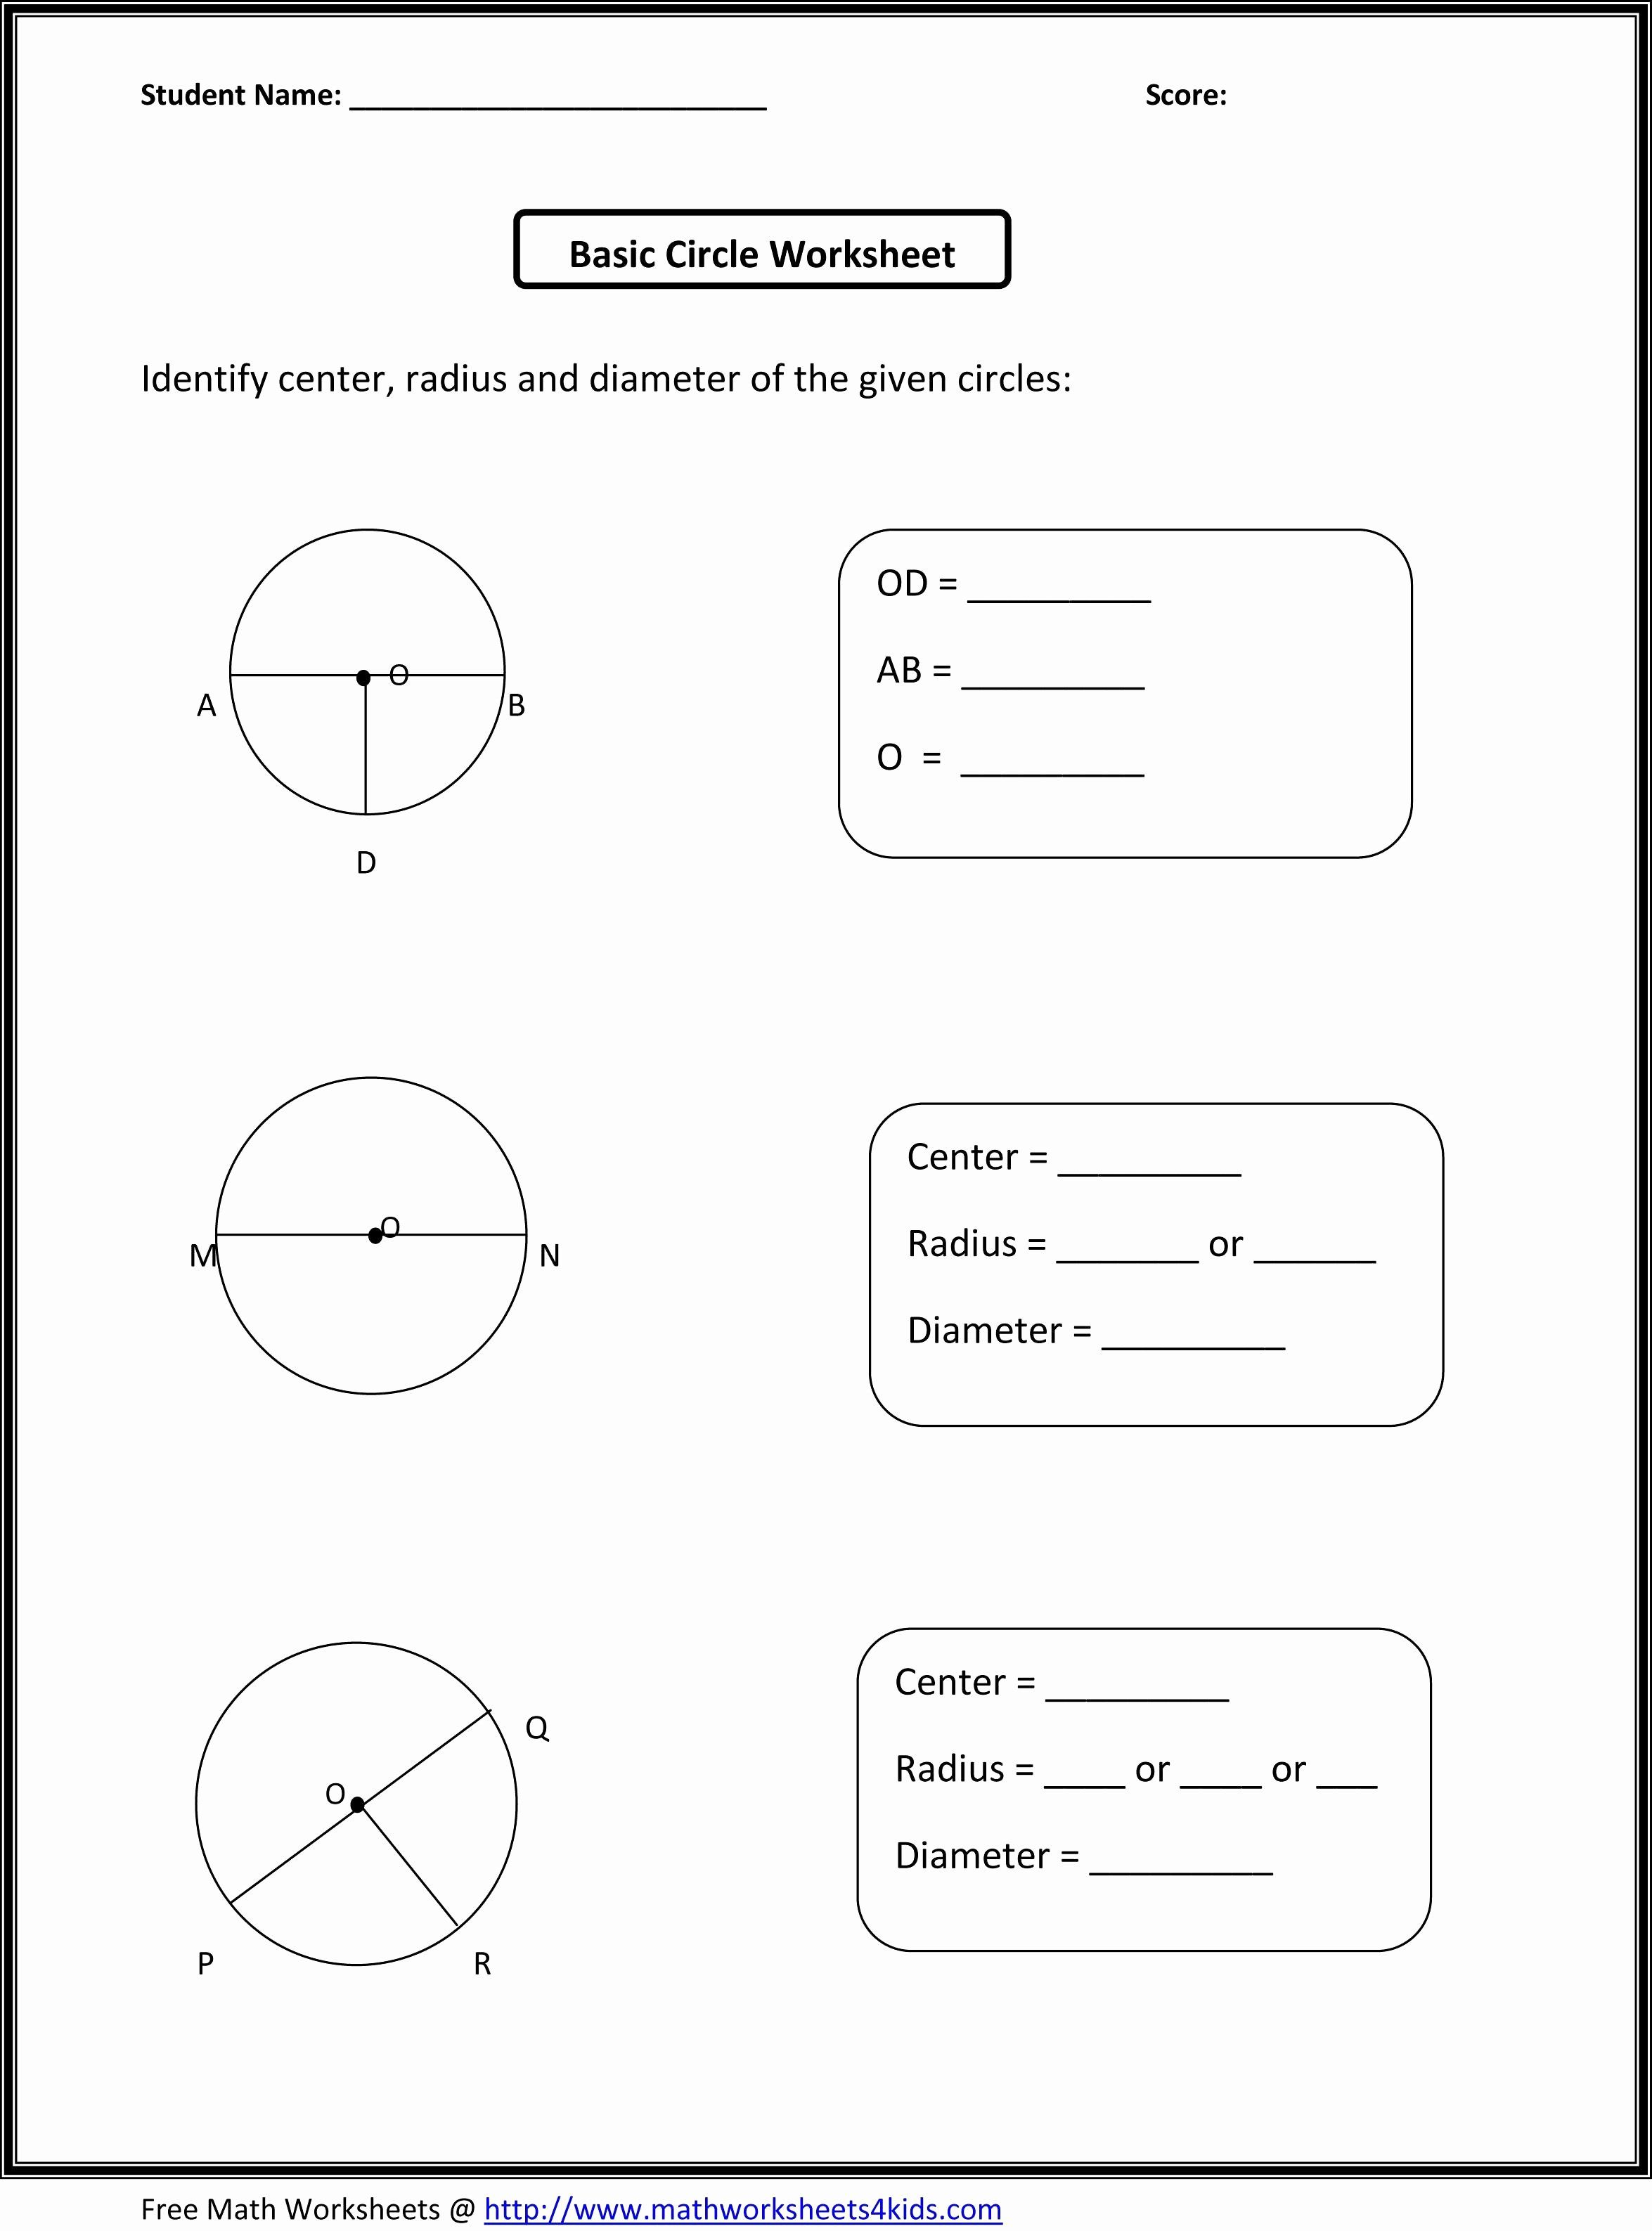 Coloring Sheets For First Grade Awesome First Grade